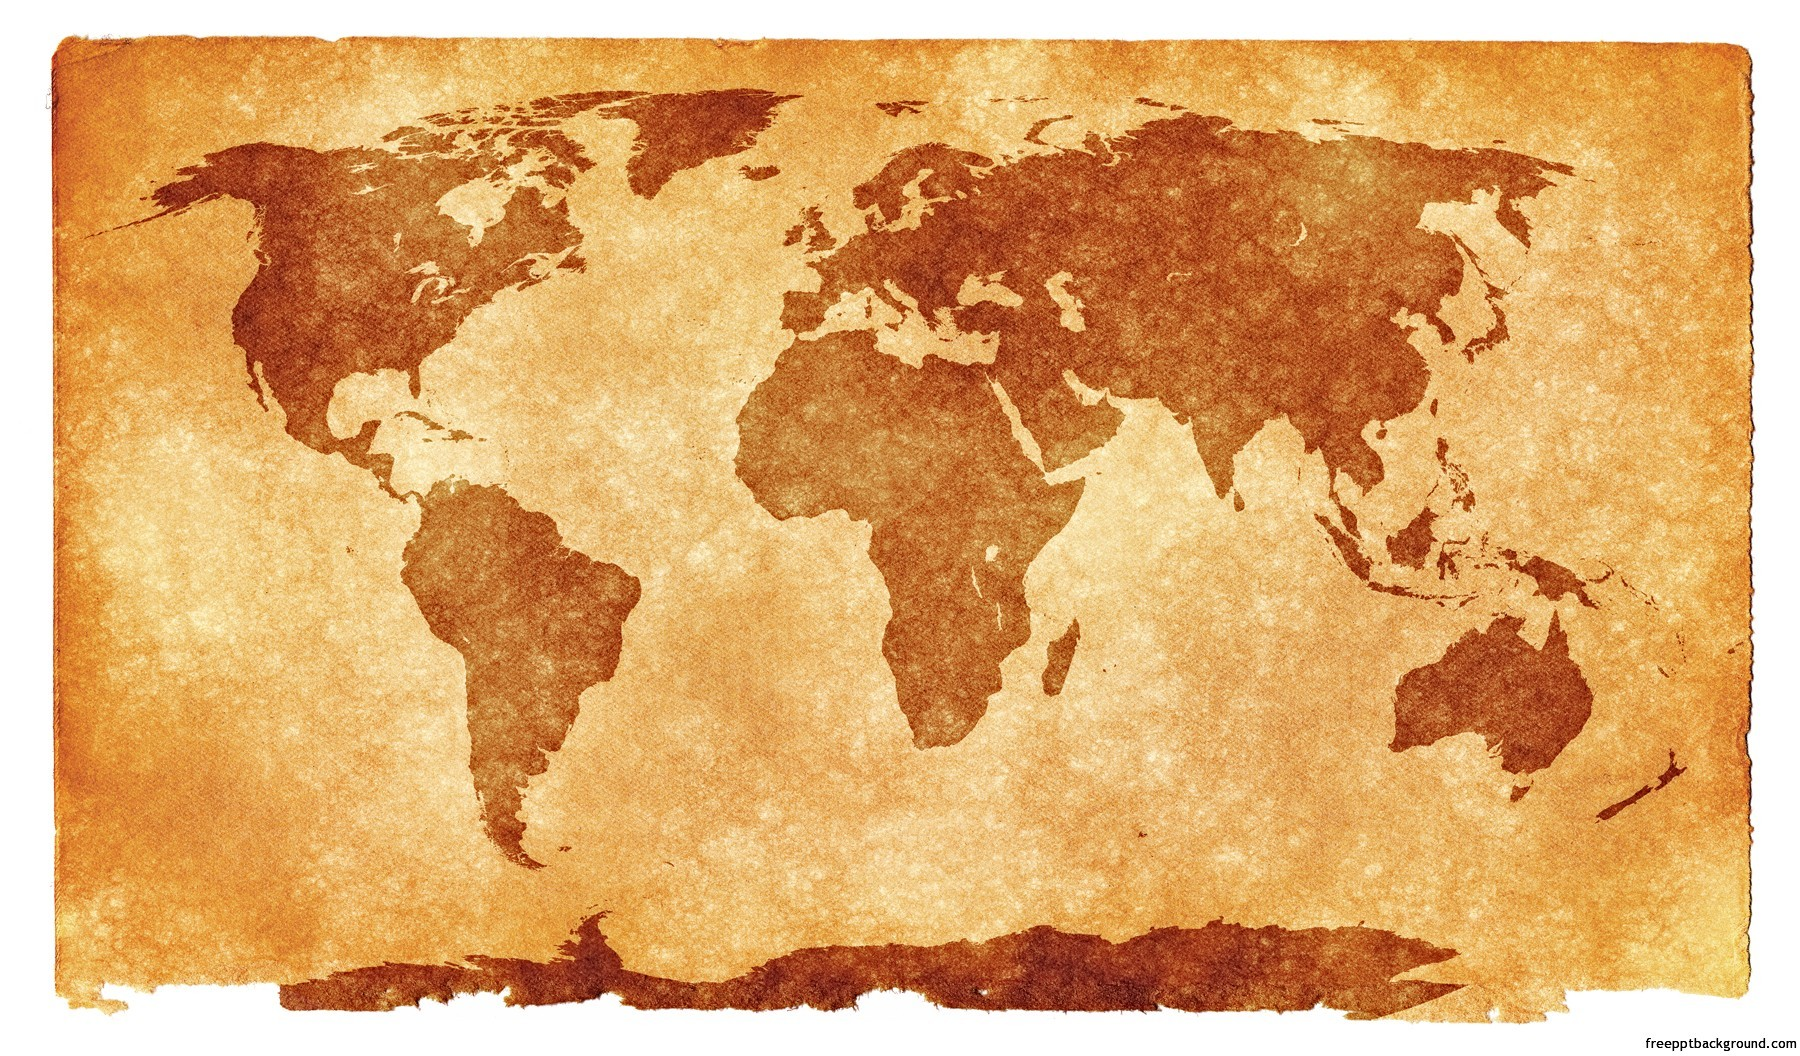 Grunge textured world map for ppt presentations free ppt backgrounds tags gumiabroncs Images